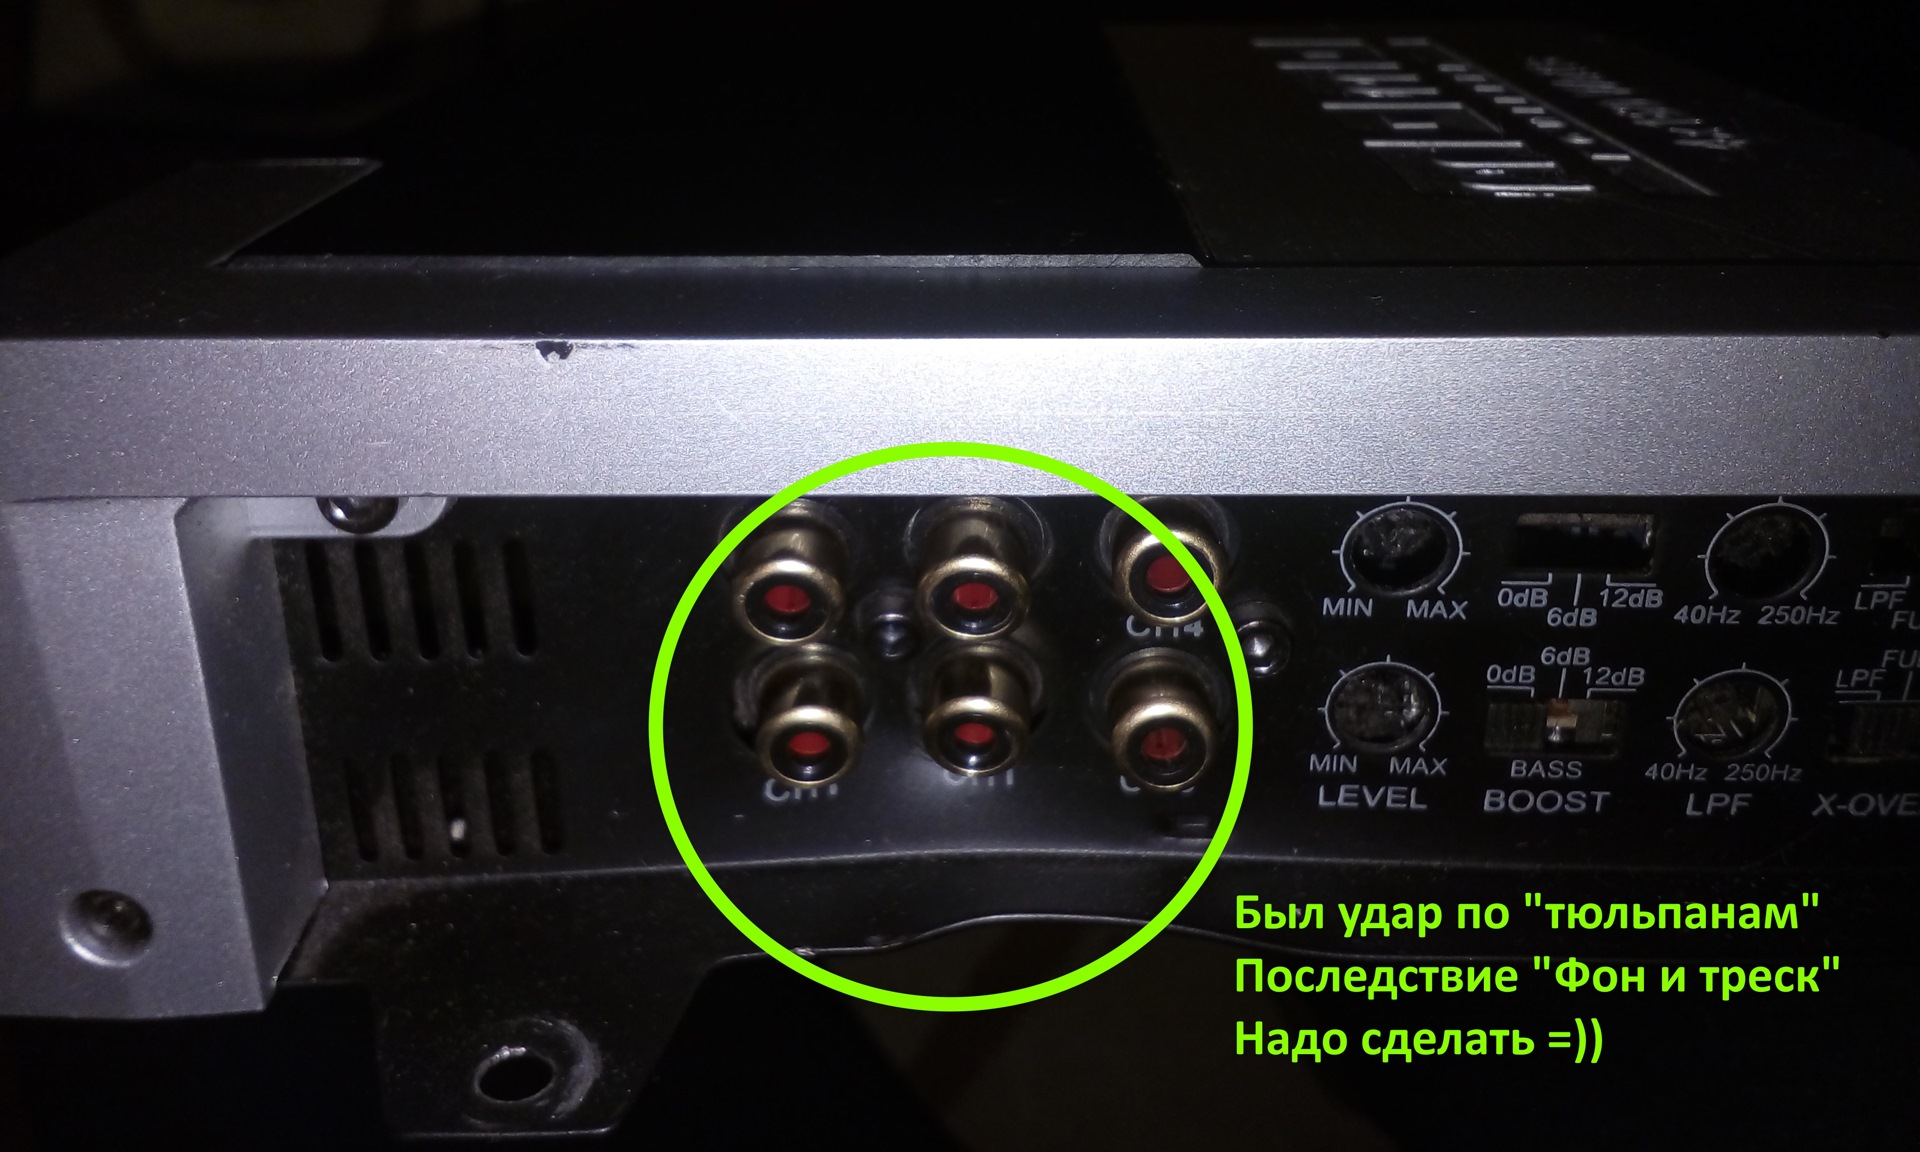 Lada 2115 - technical equipment at the highest level